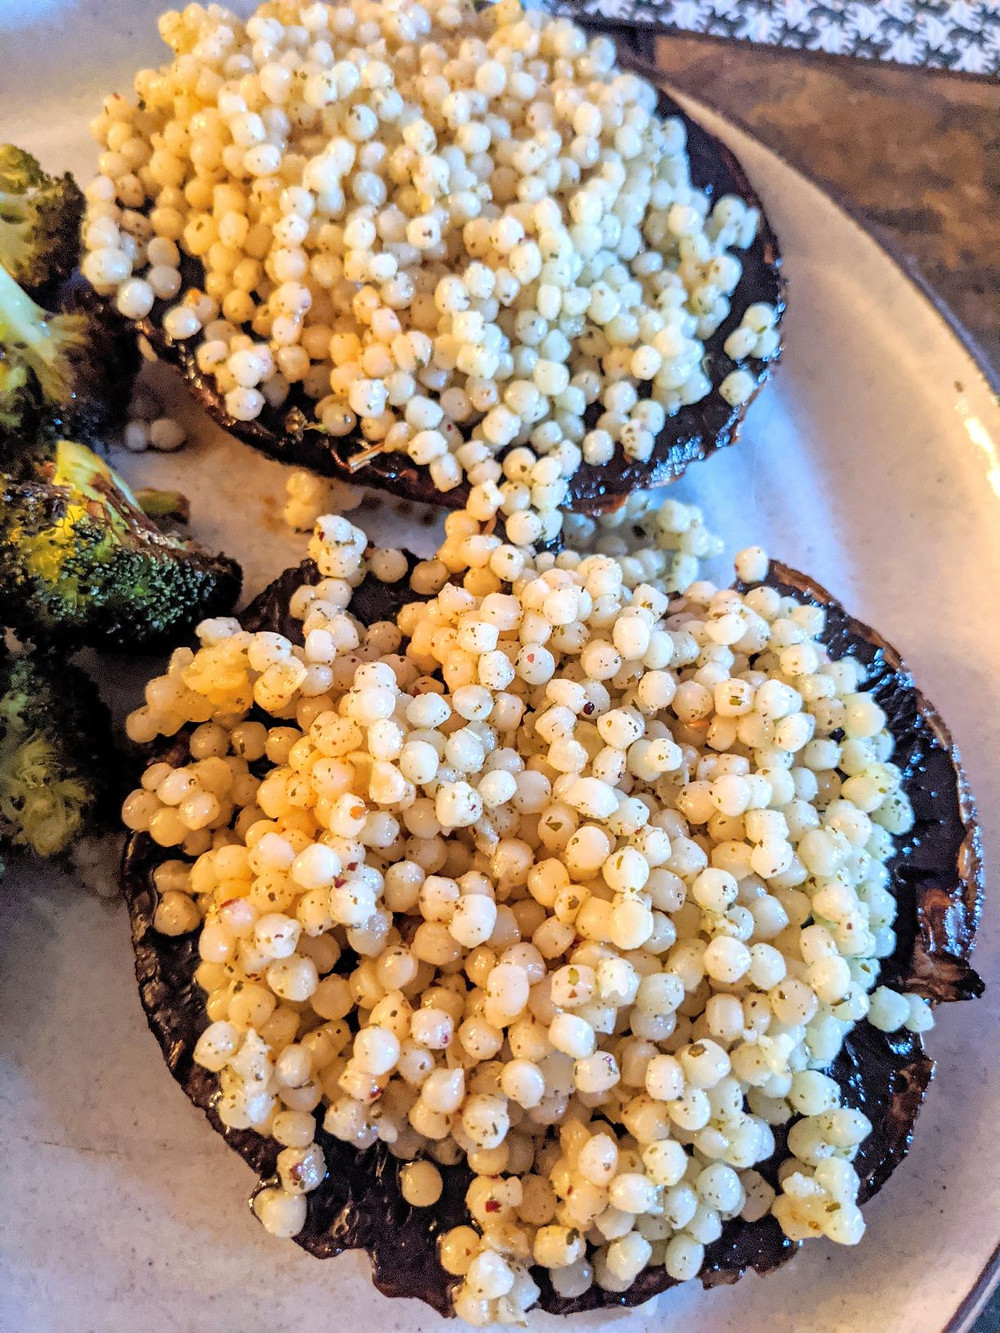 Couscous Stuffed Portobello Mushrooms